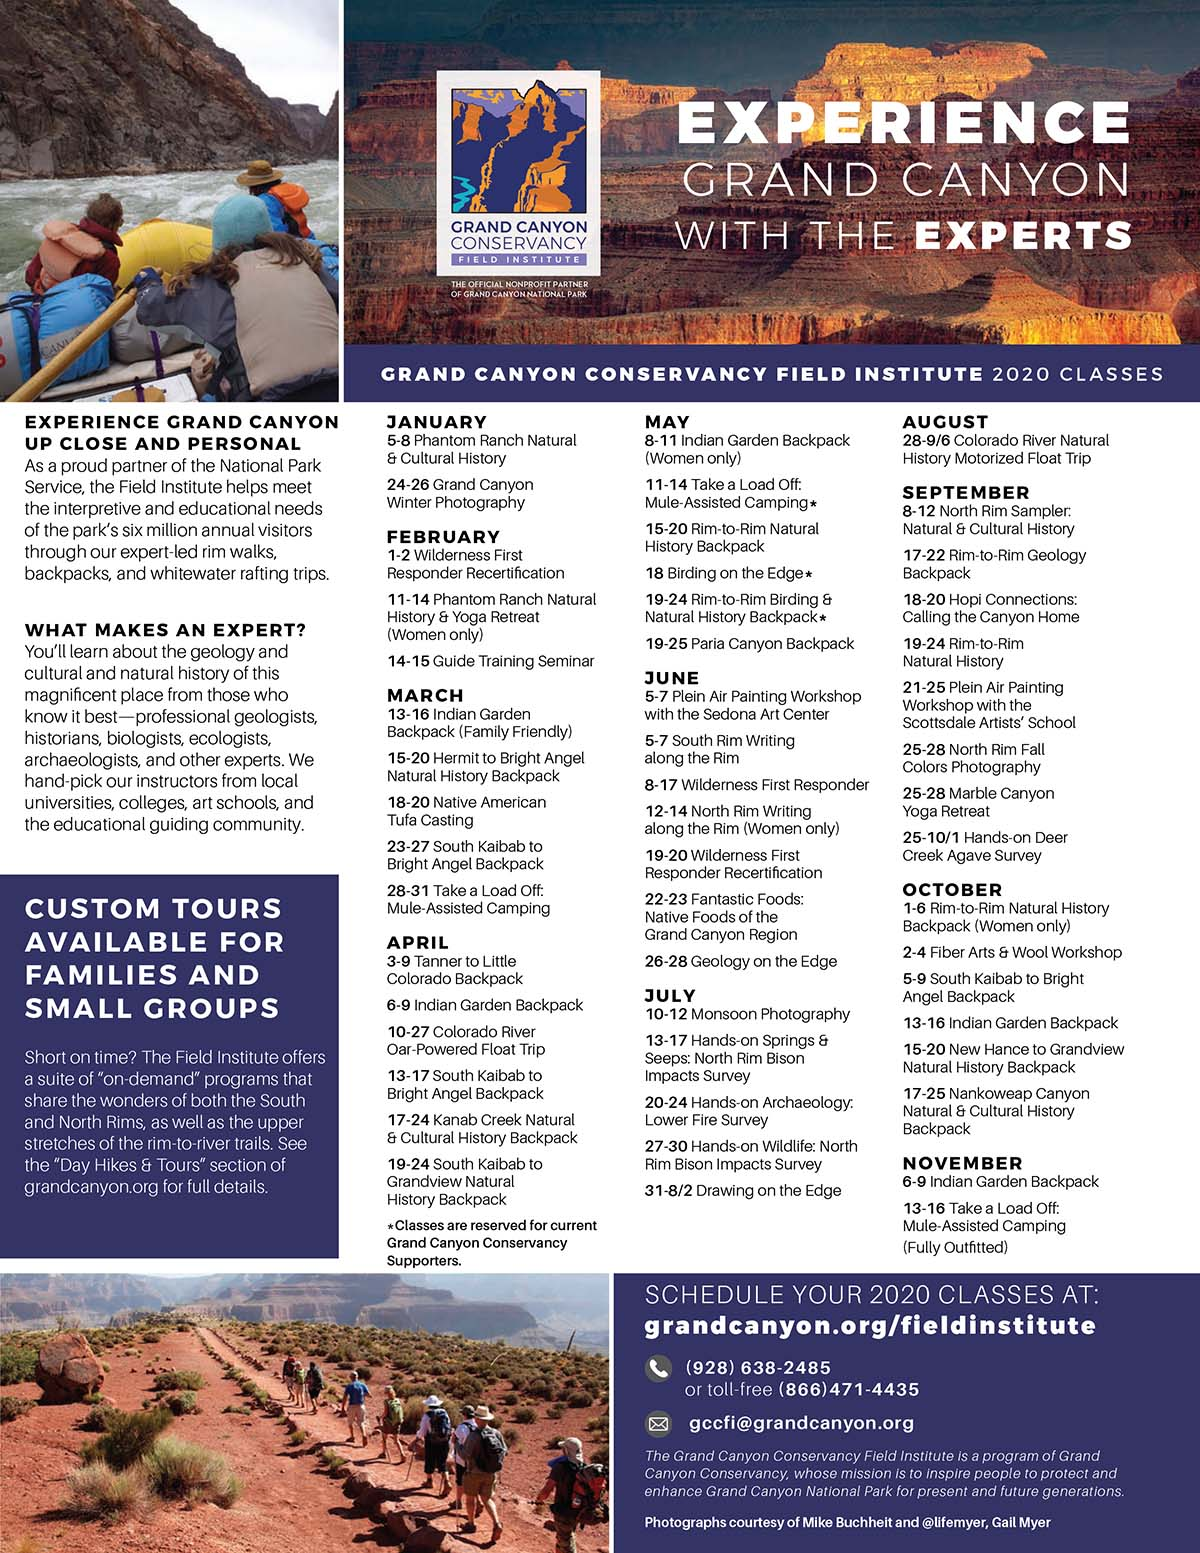 Field Institute Class Schedule Displays 11 Months Of 2020 Class Listing In 3 Columns Of Text. Two Small Photos Illustrate Hiking And Rafting Activities. - Field Institute class schedule displays 11 months of 2020 class listing in 3 columns of text. Two small photos illustrate hiking and rafting activities.